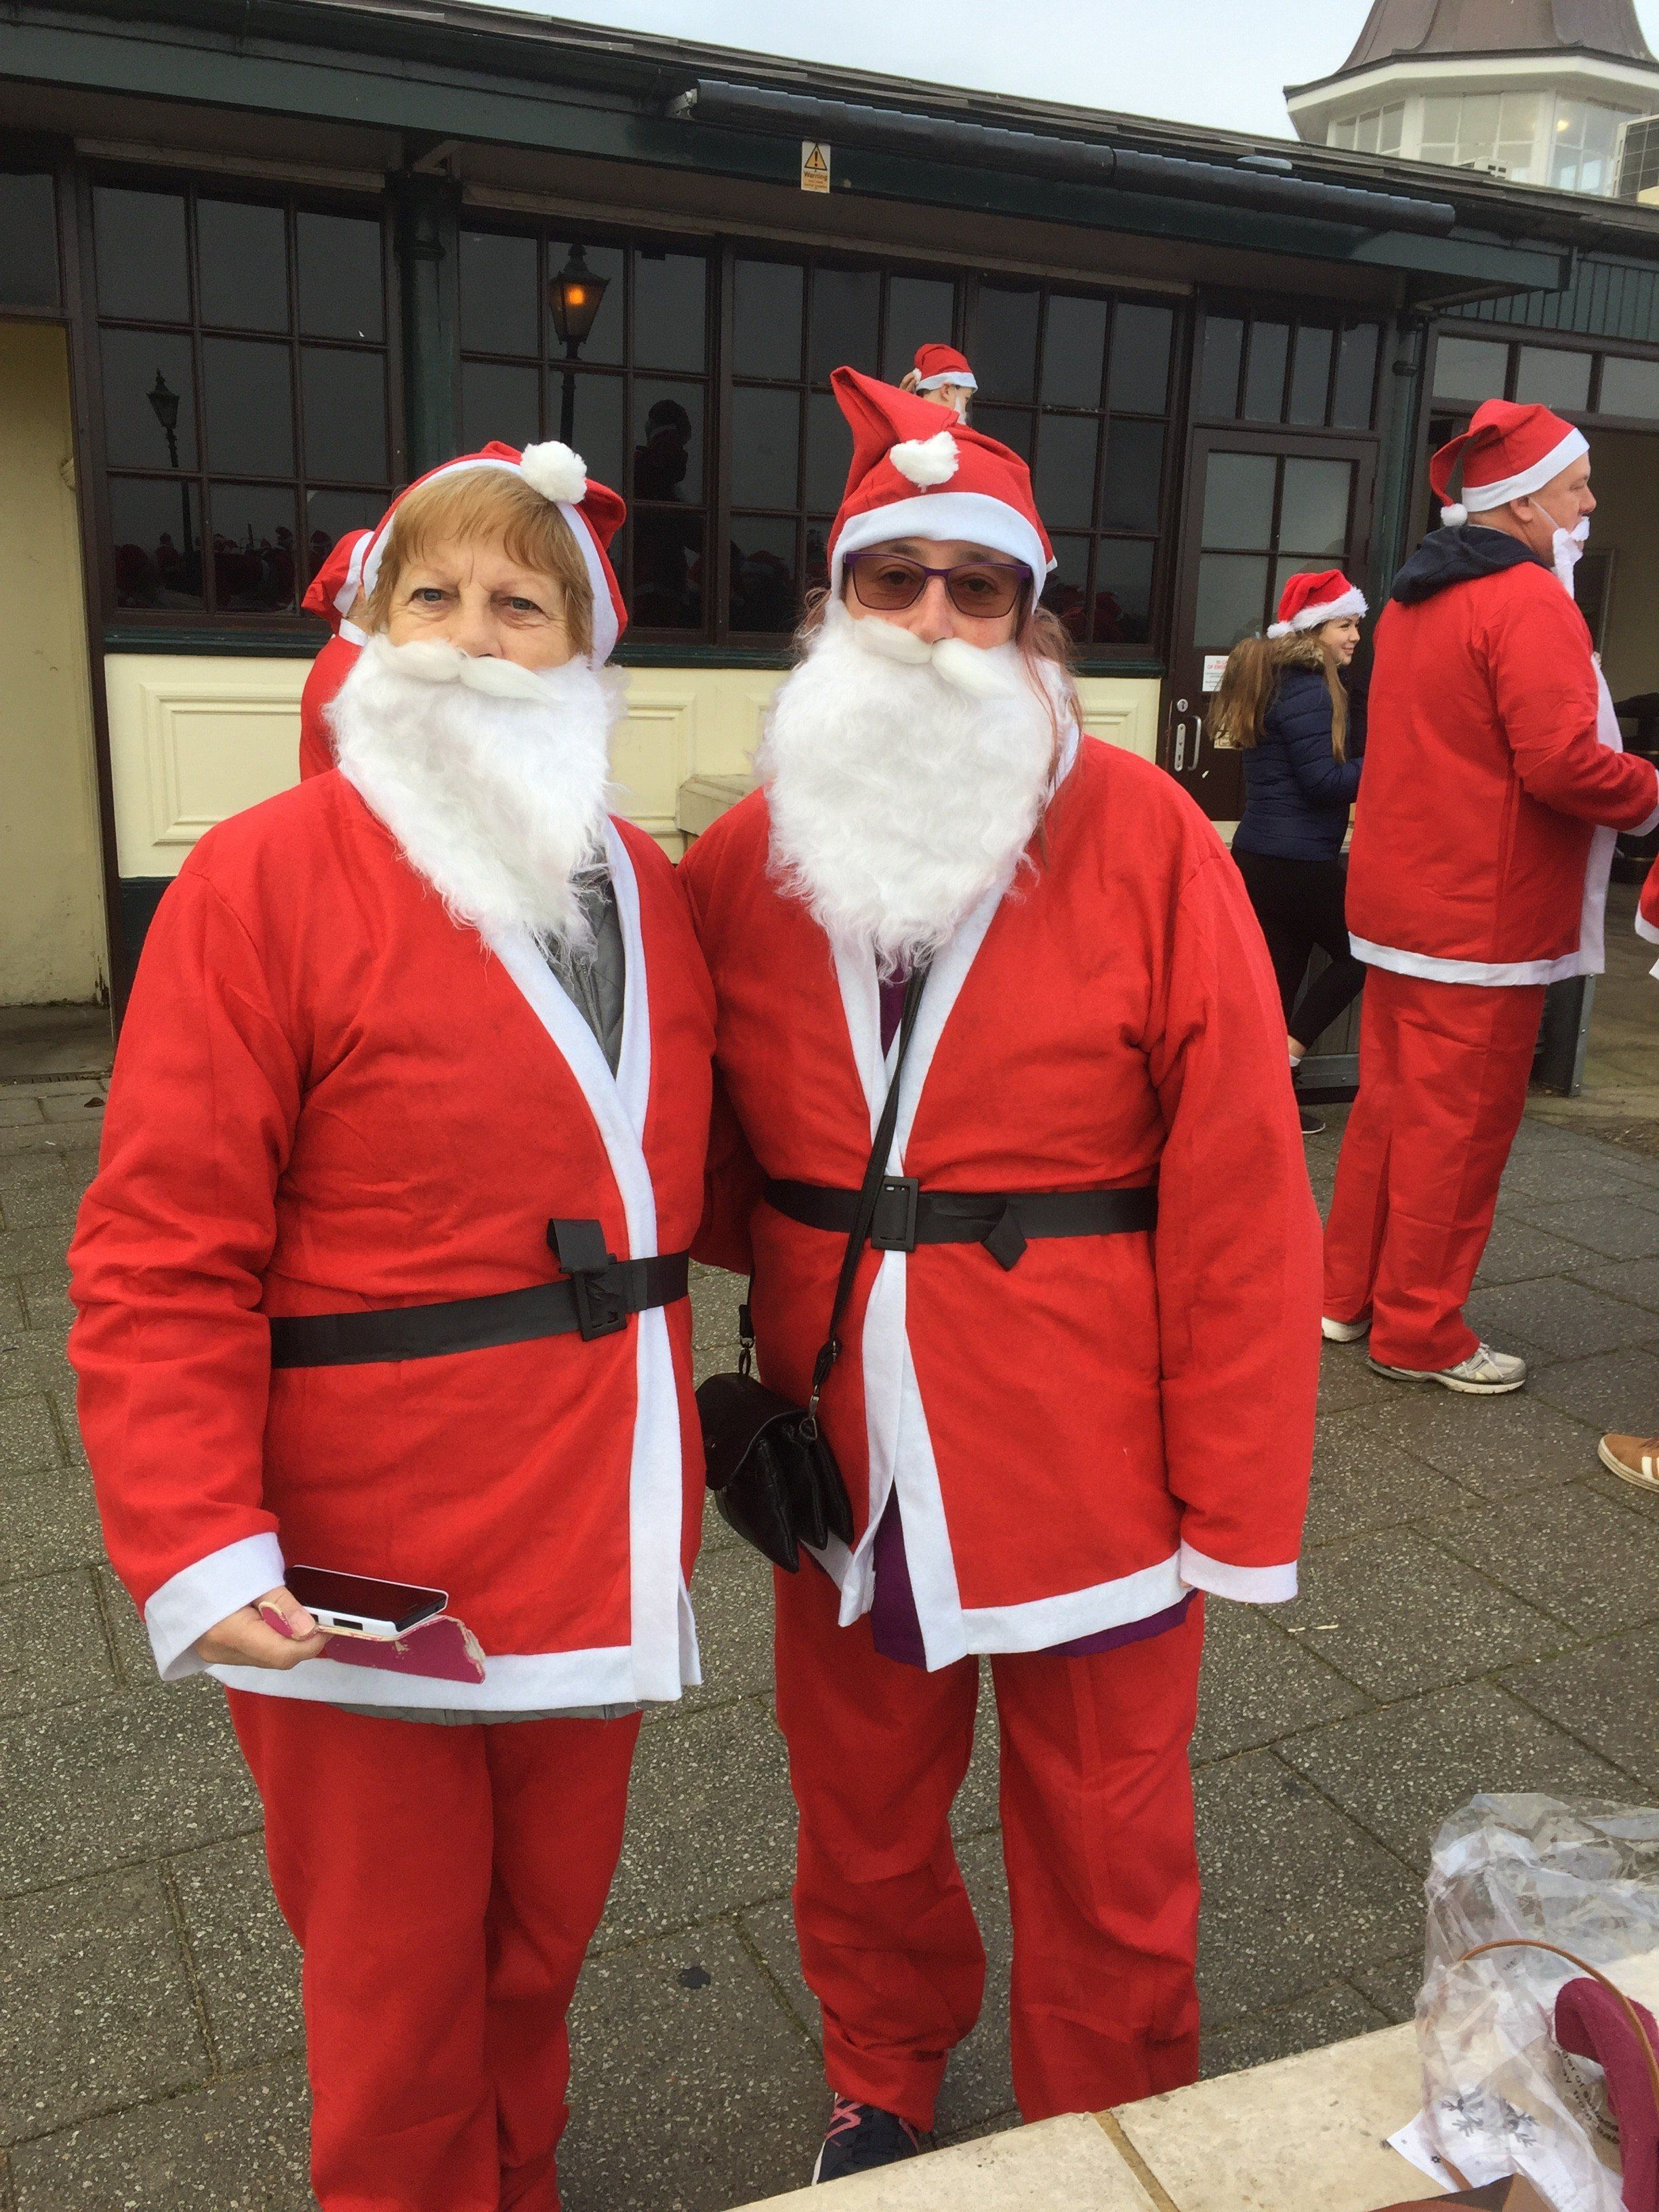 Cllrs dressed up as Santa